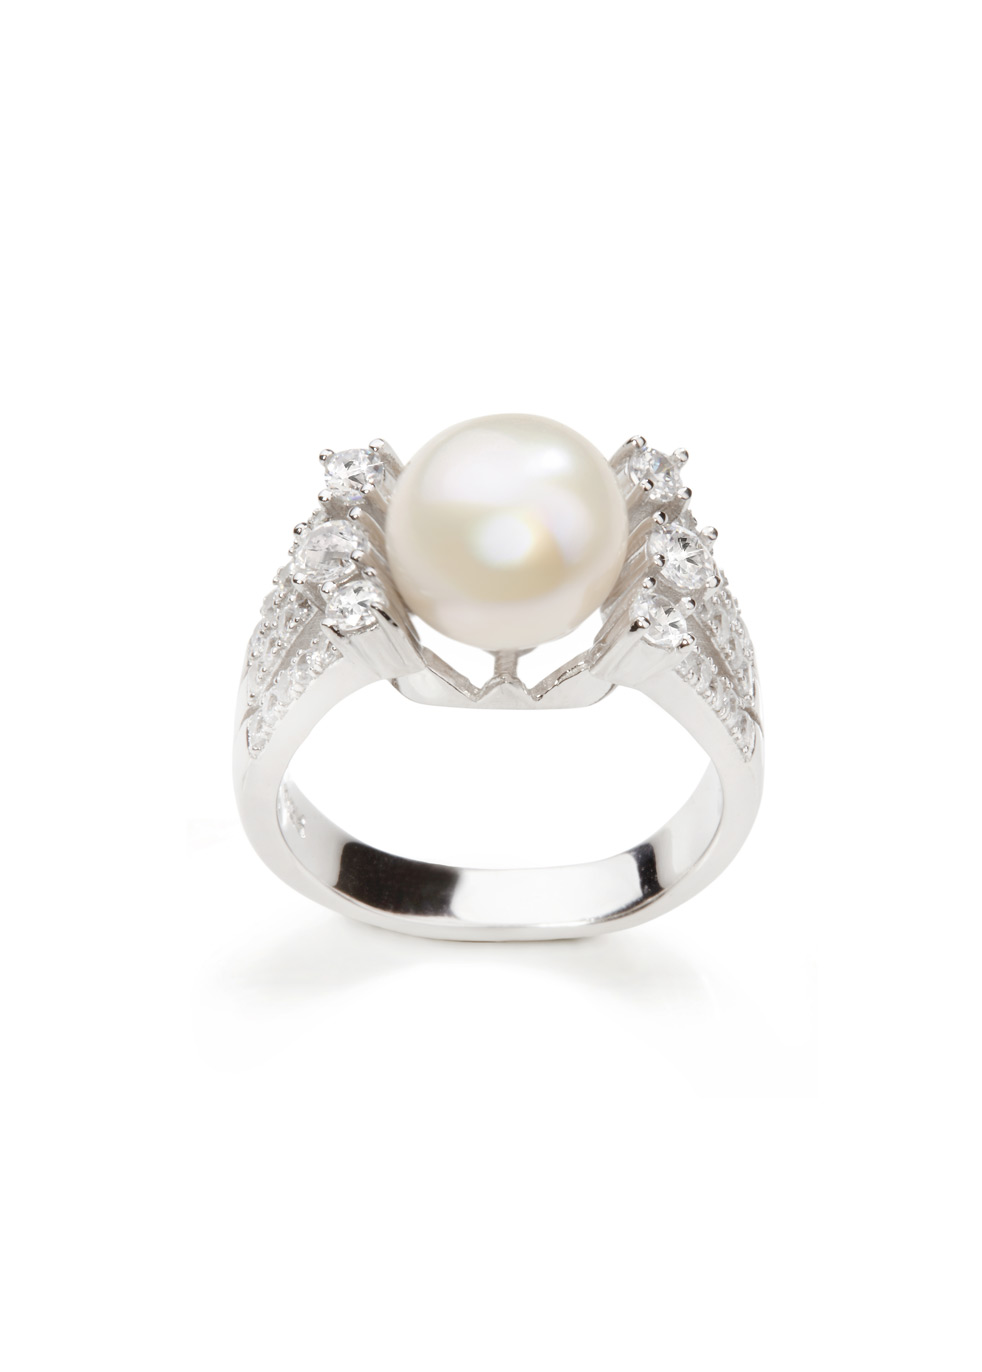 APPLES & FIGS PEARL MOON RING